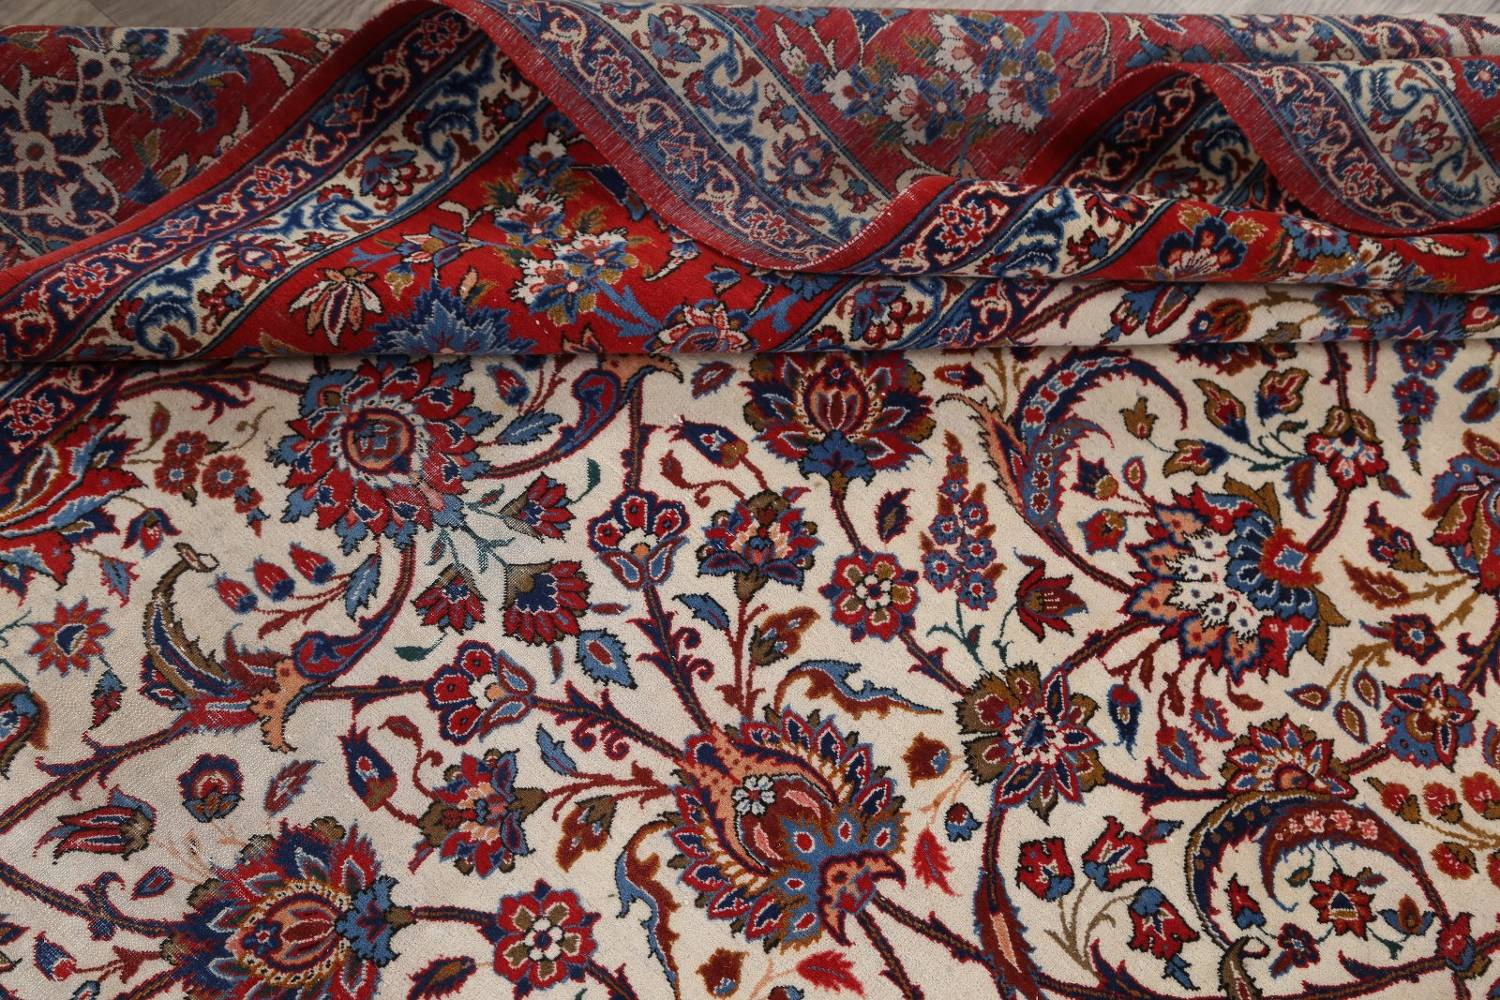 Antique Floral 10x16 Isfahan Persian Area Rug image 24